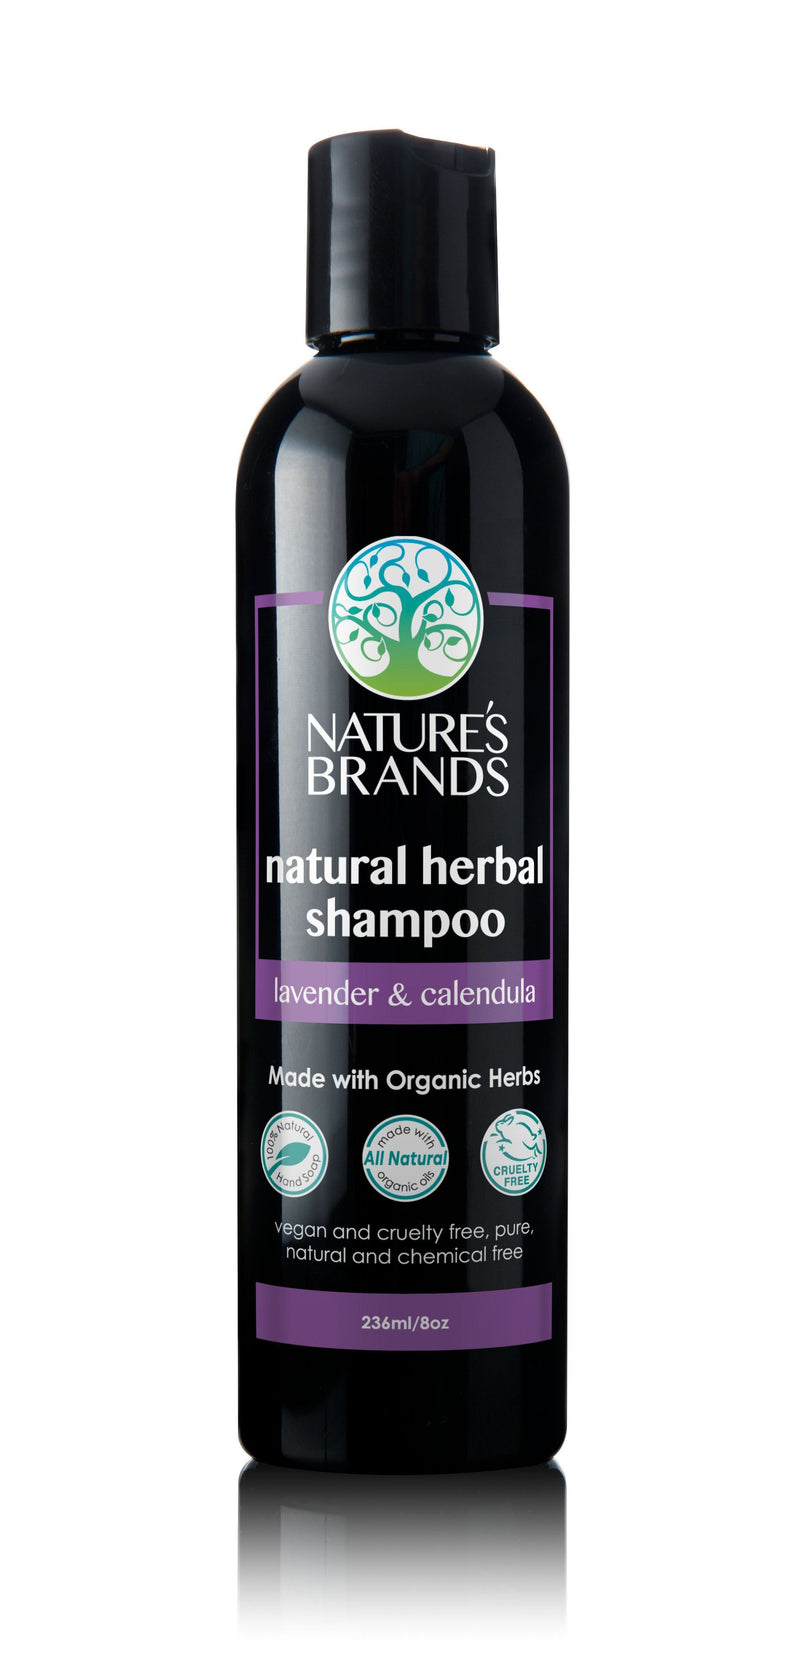 Herbal Choice Mari Natural Shampoo, Lavender And Calendula; Made with Organic - Herbal Choice Mari Natural Shampoo, Lavender And Calendula; Made with Organic - 8floz